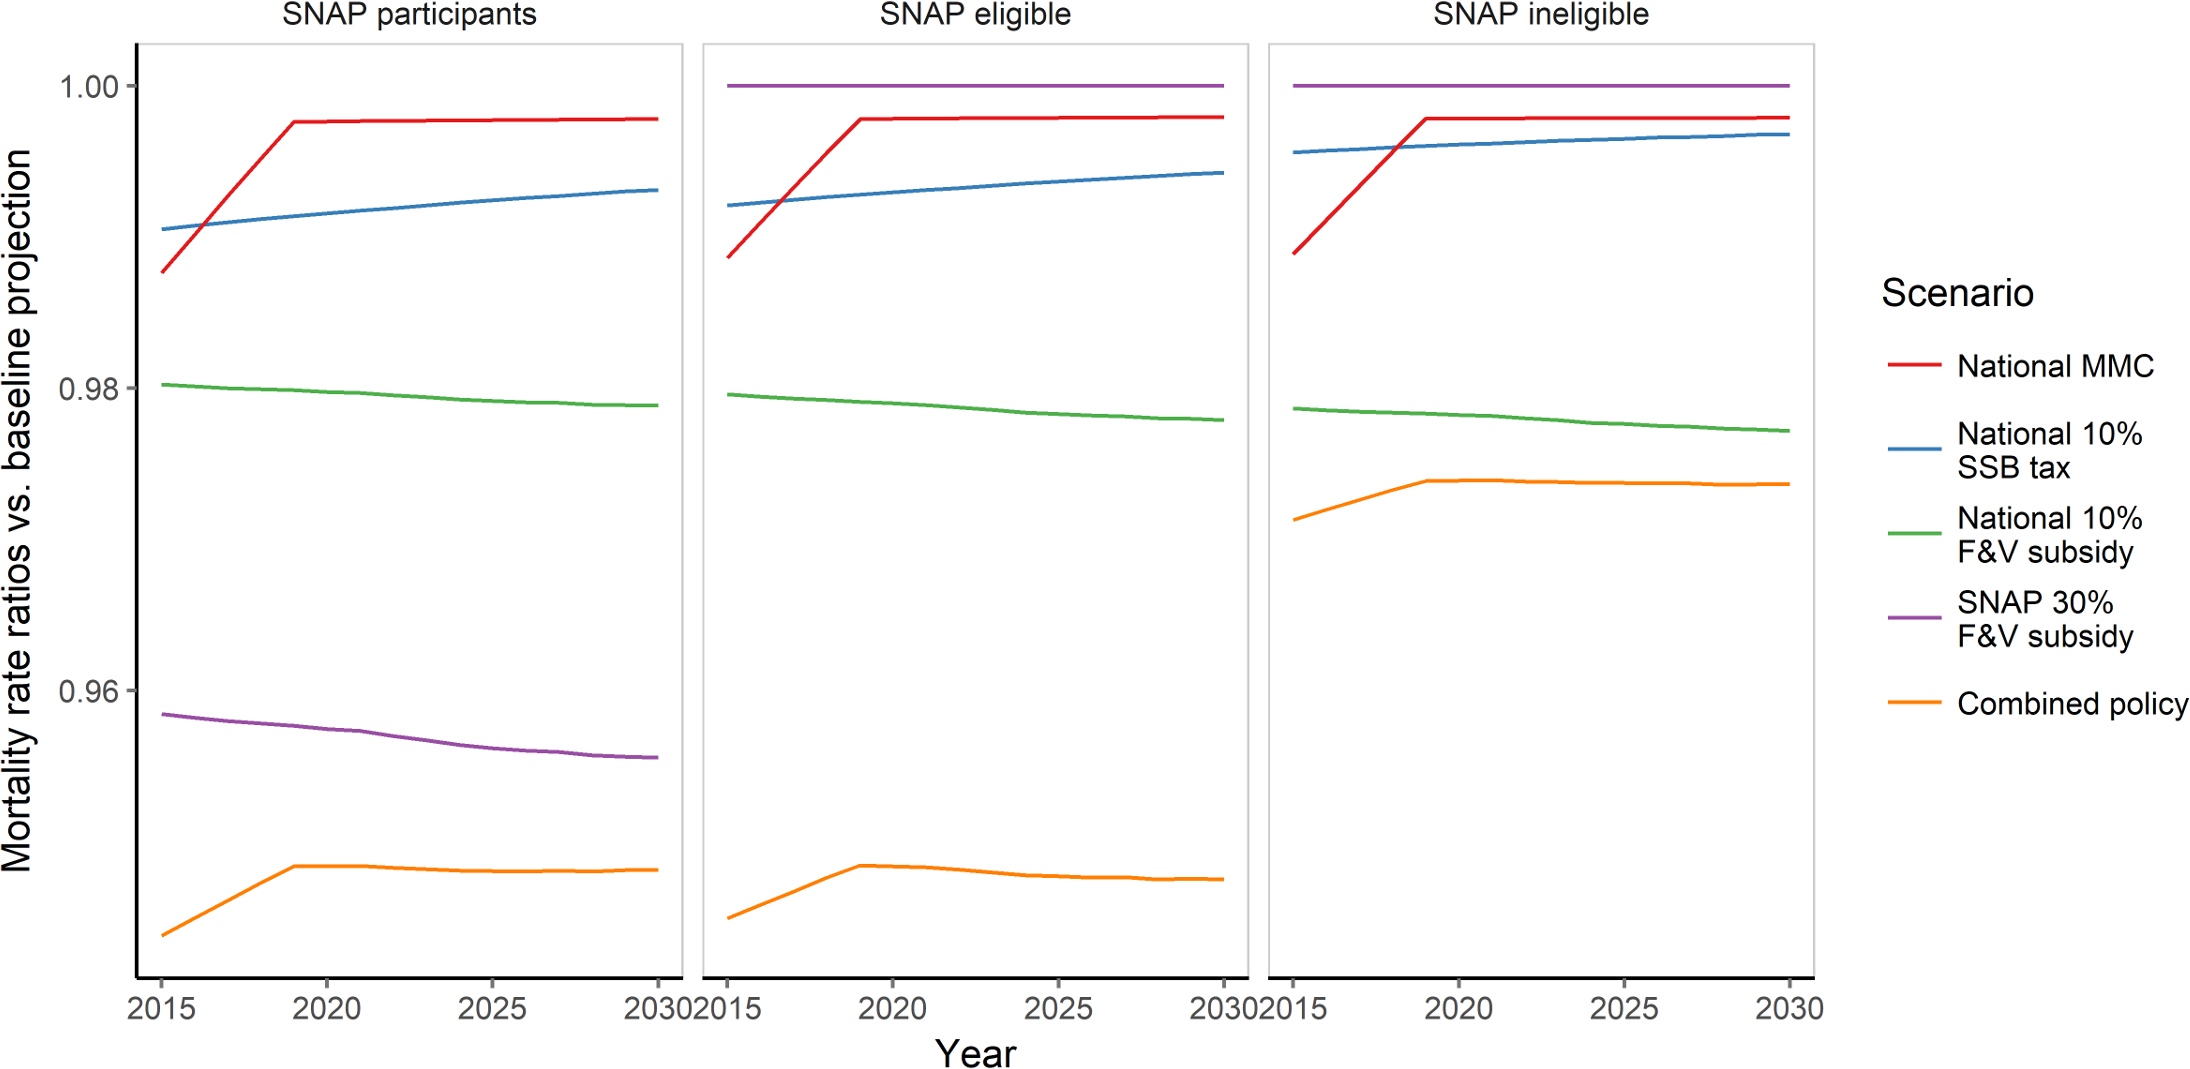 Standardised cardiovascular disease mortality rate ratio of each policy scenario versus baseline projection (reference) from 2015 to 2030 by SNAP group.